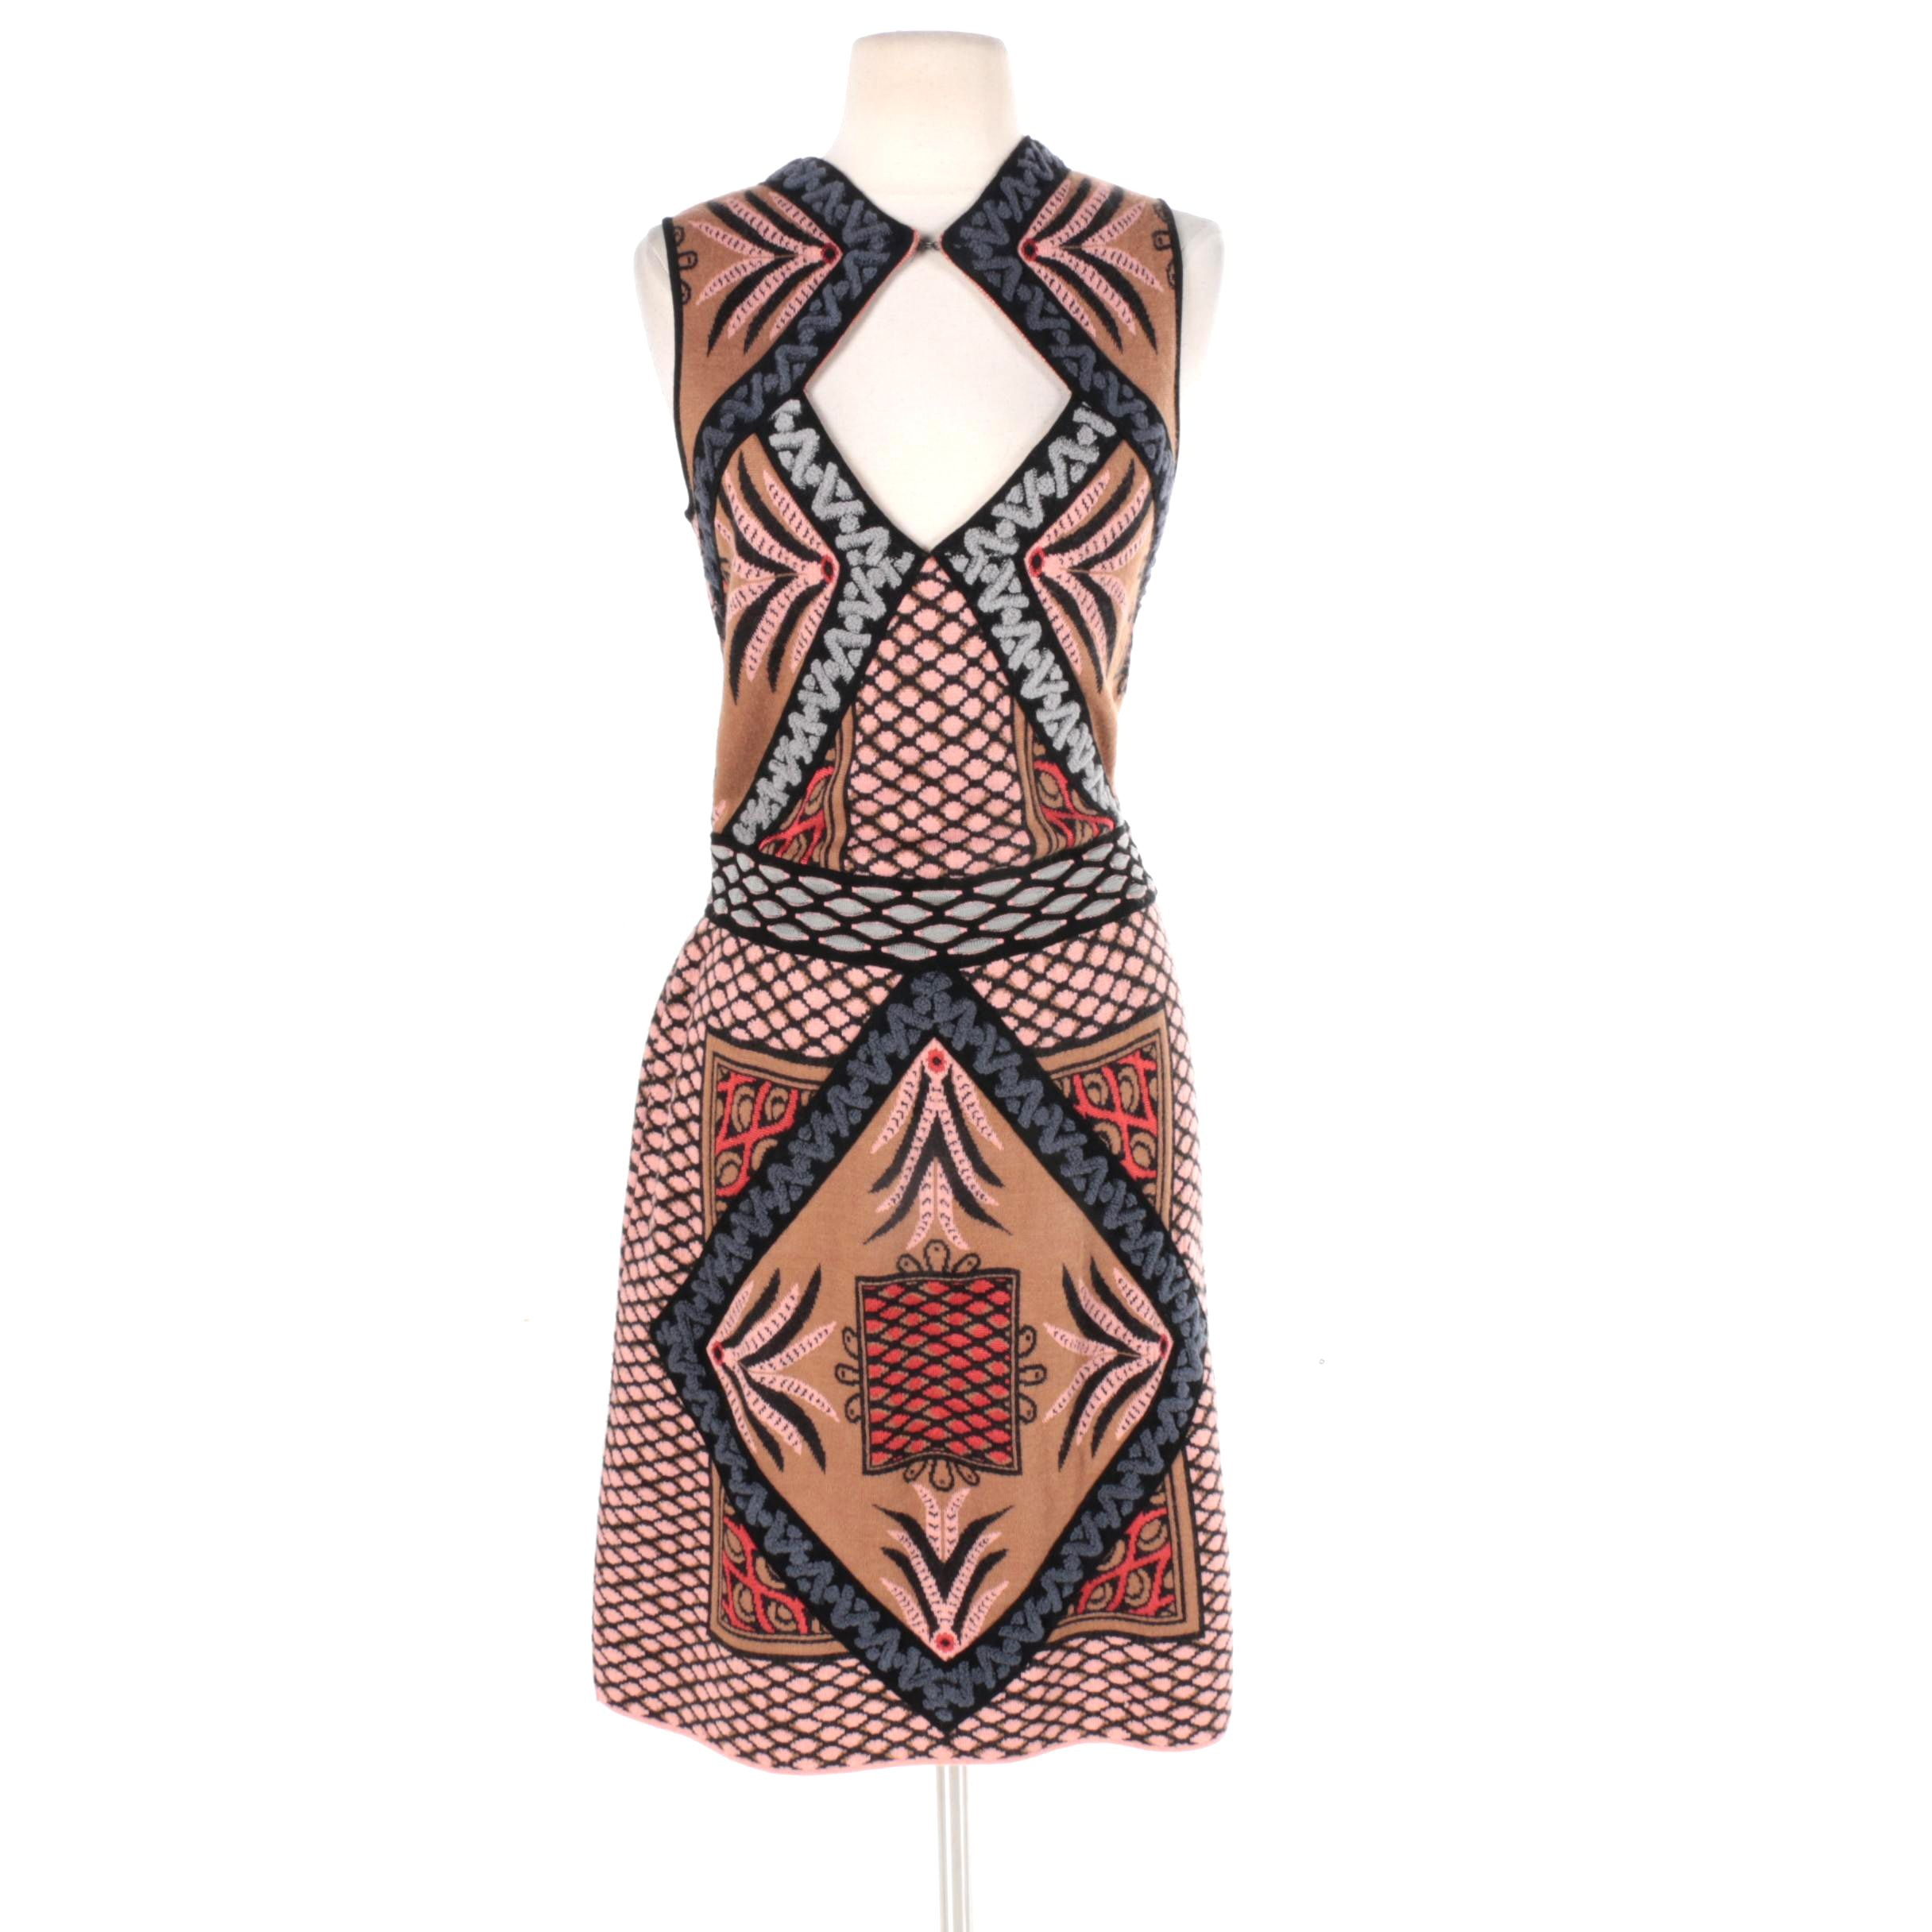 M Missoni Sleeveless Keyhole Dress